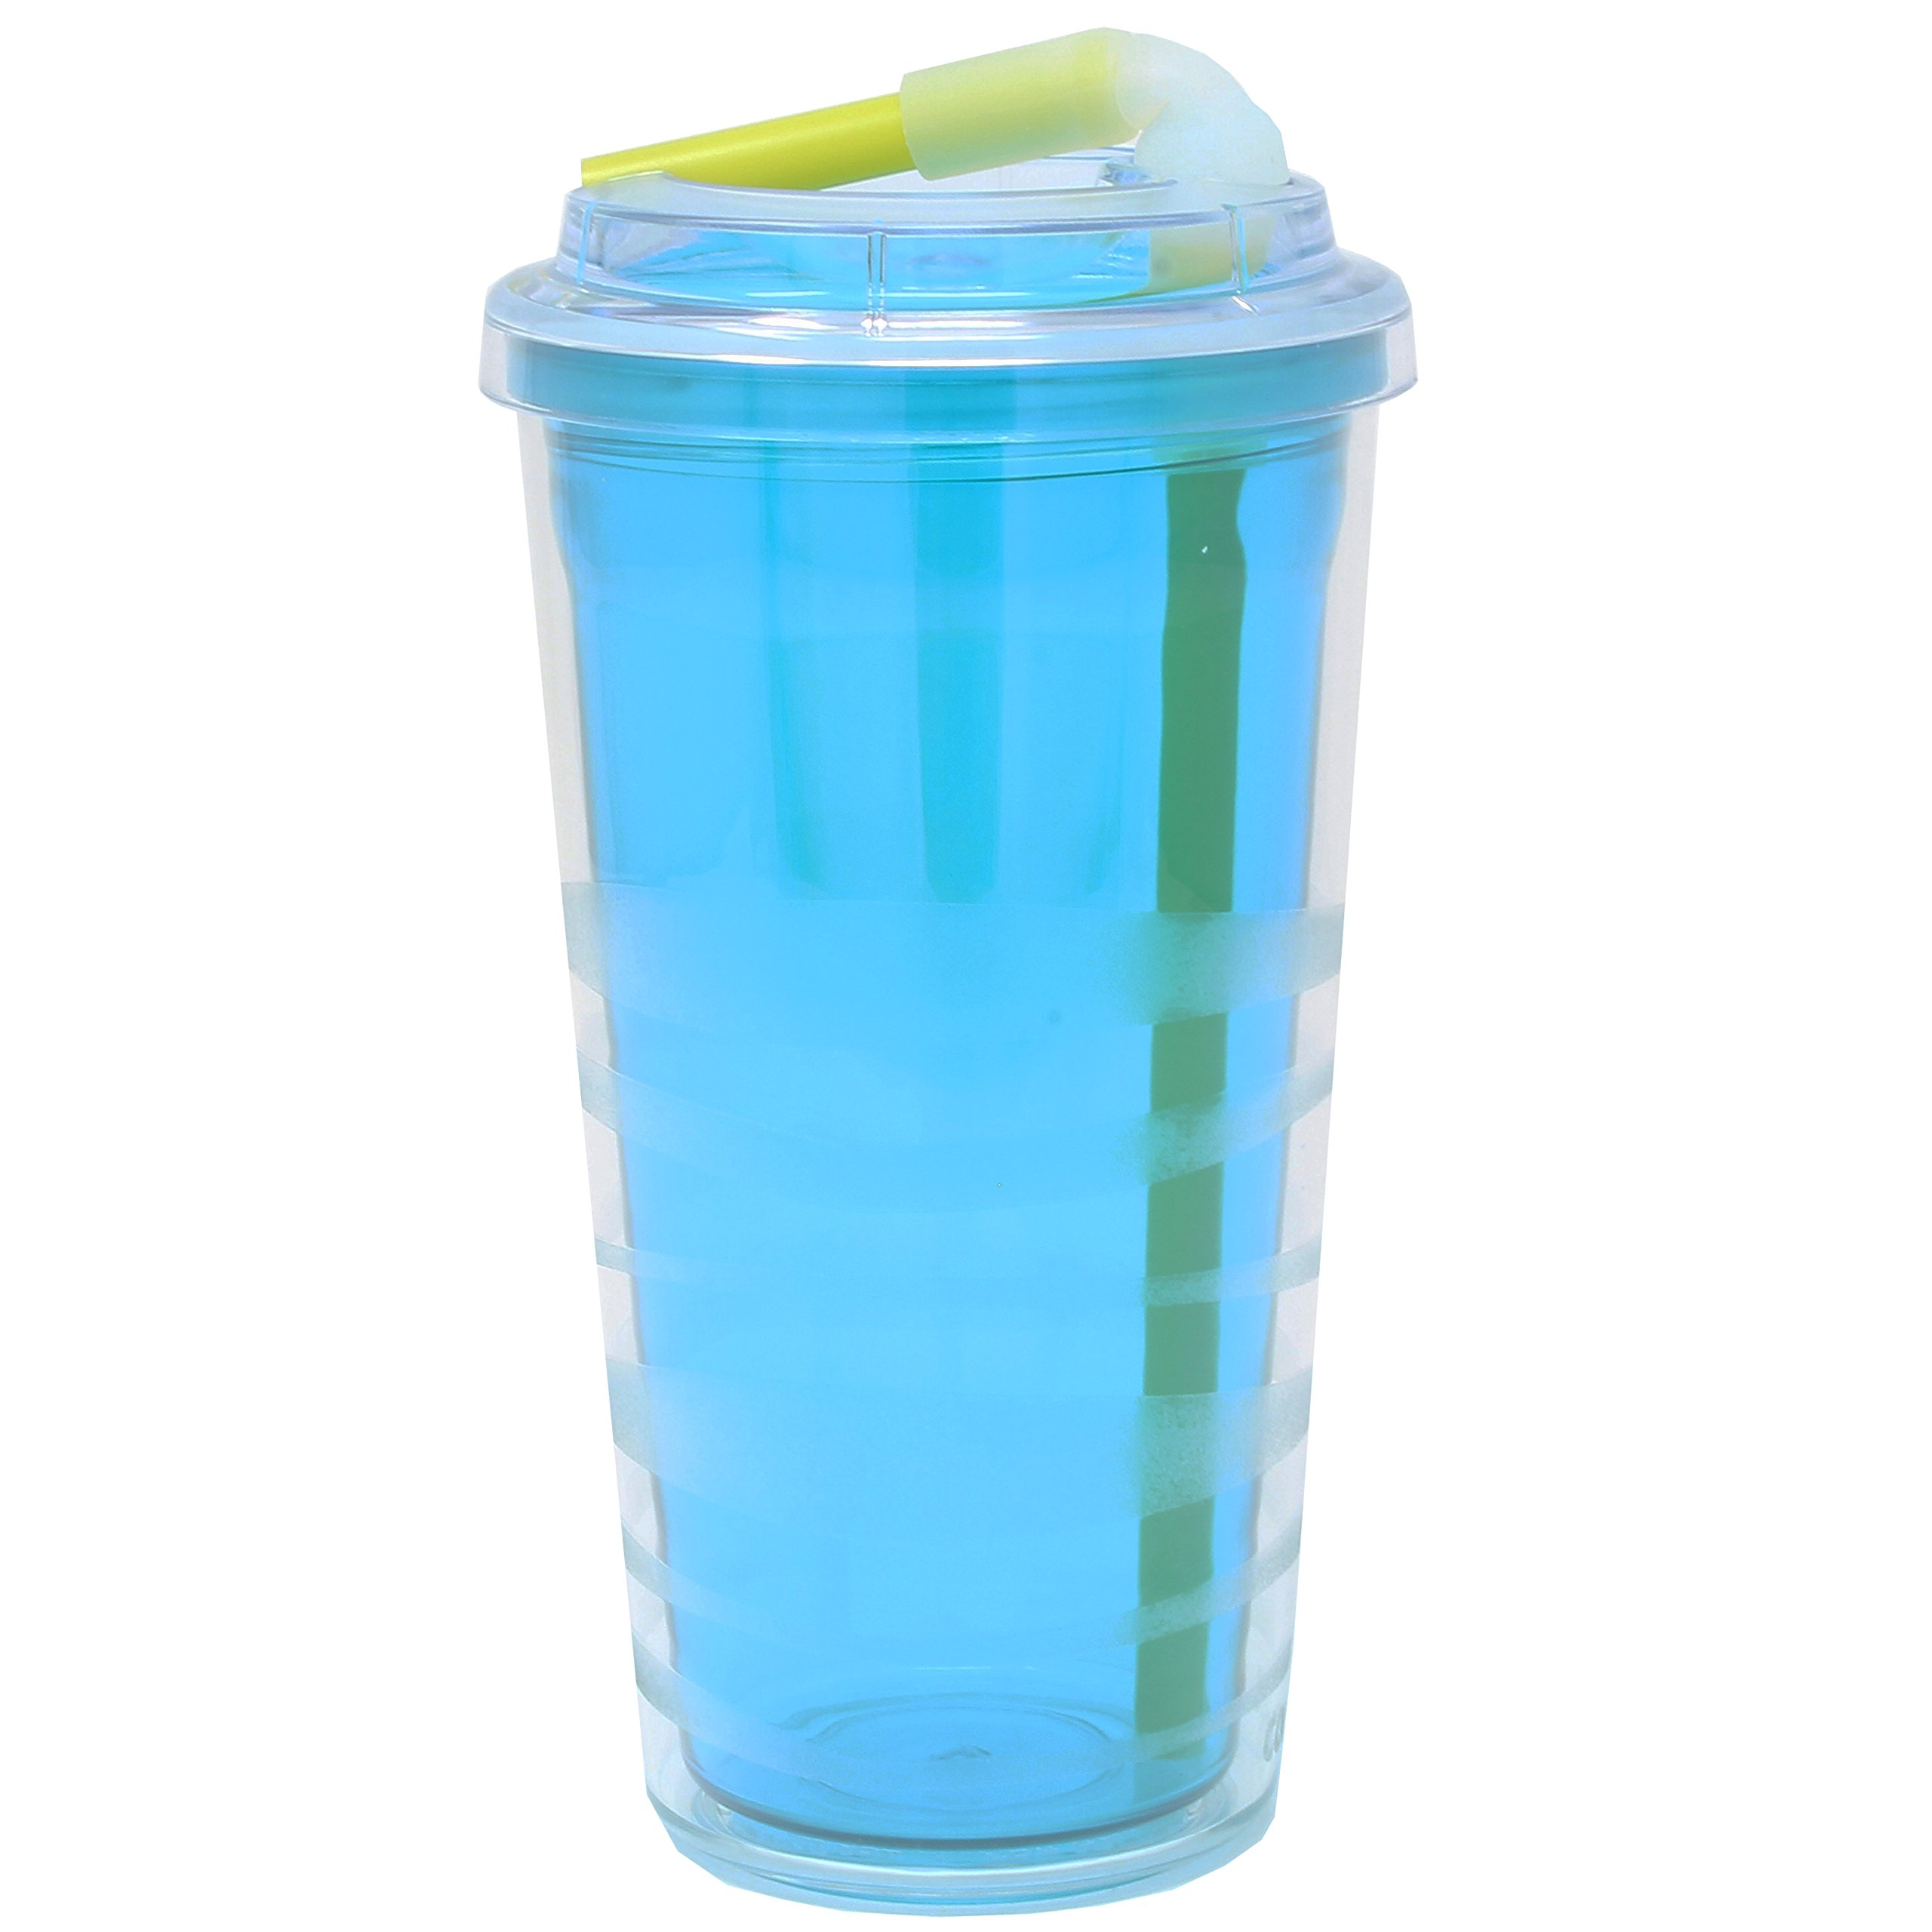 Copco 2510-2139 Lock-N-Roll Double Wall Tumbler with Flip Up Straw, 16-Ounce, Teal Blue